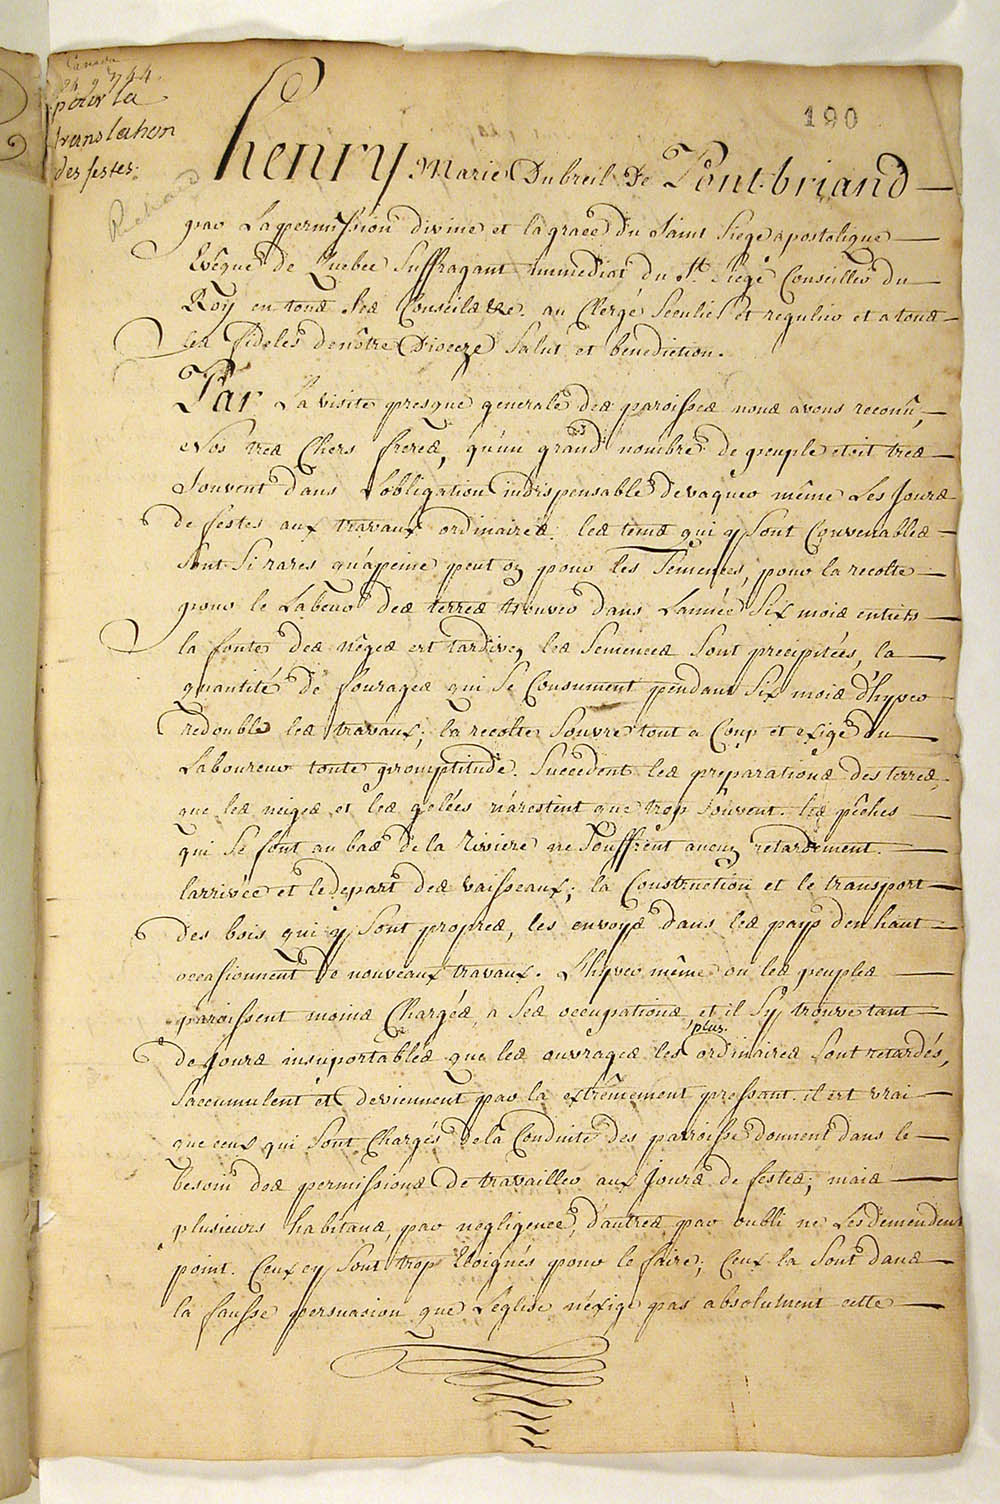 Pastoral letter from the Bishop of Pontbriand reassigning the celebration of a number of feast days to Sundays, November 24, 1744, FR CAOM COL F3 13 fol. 190-191vo